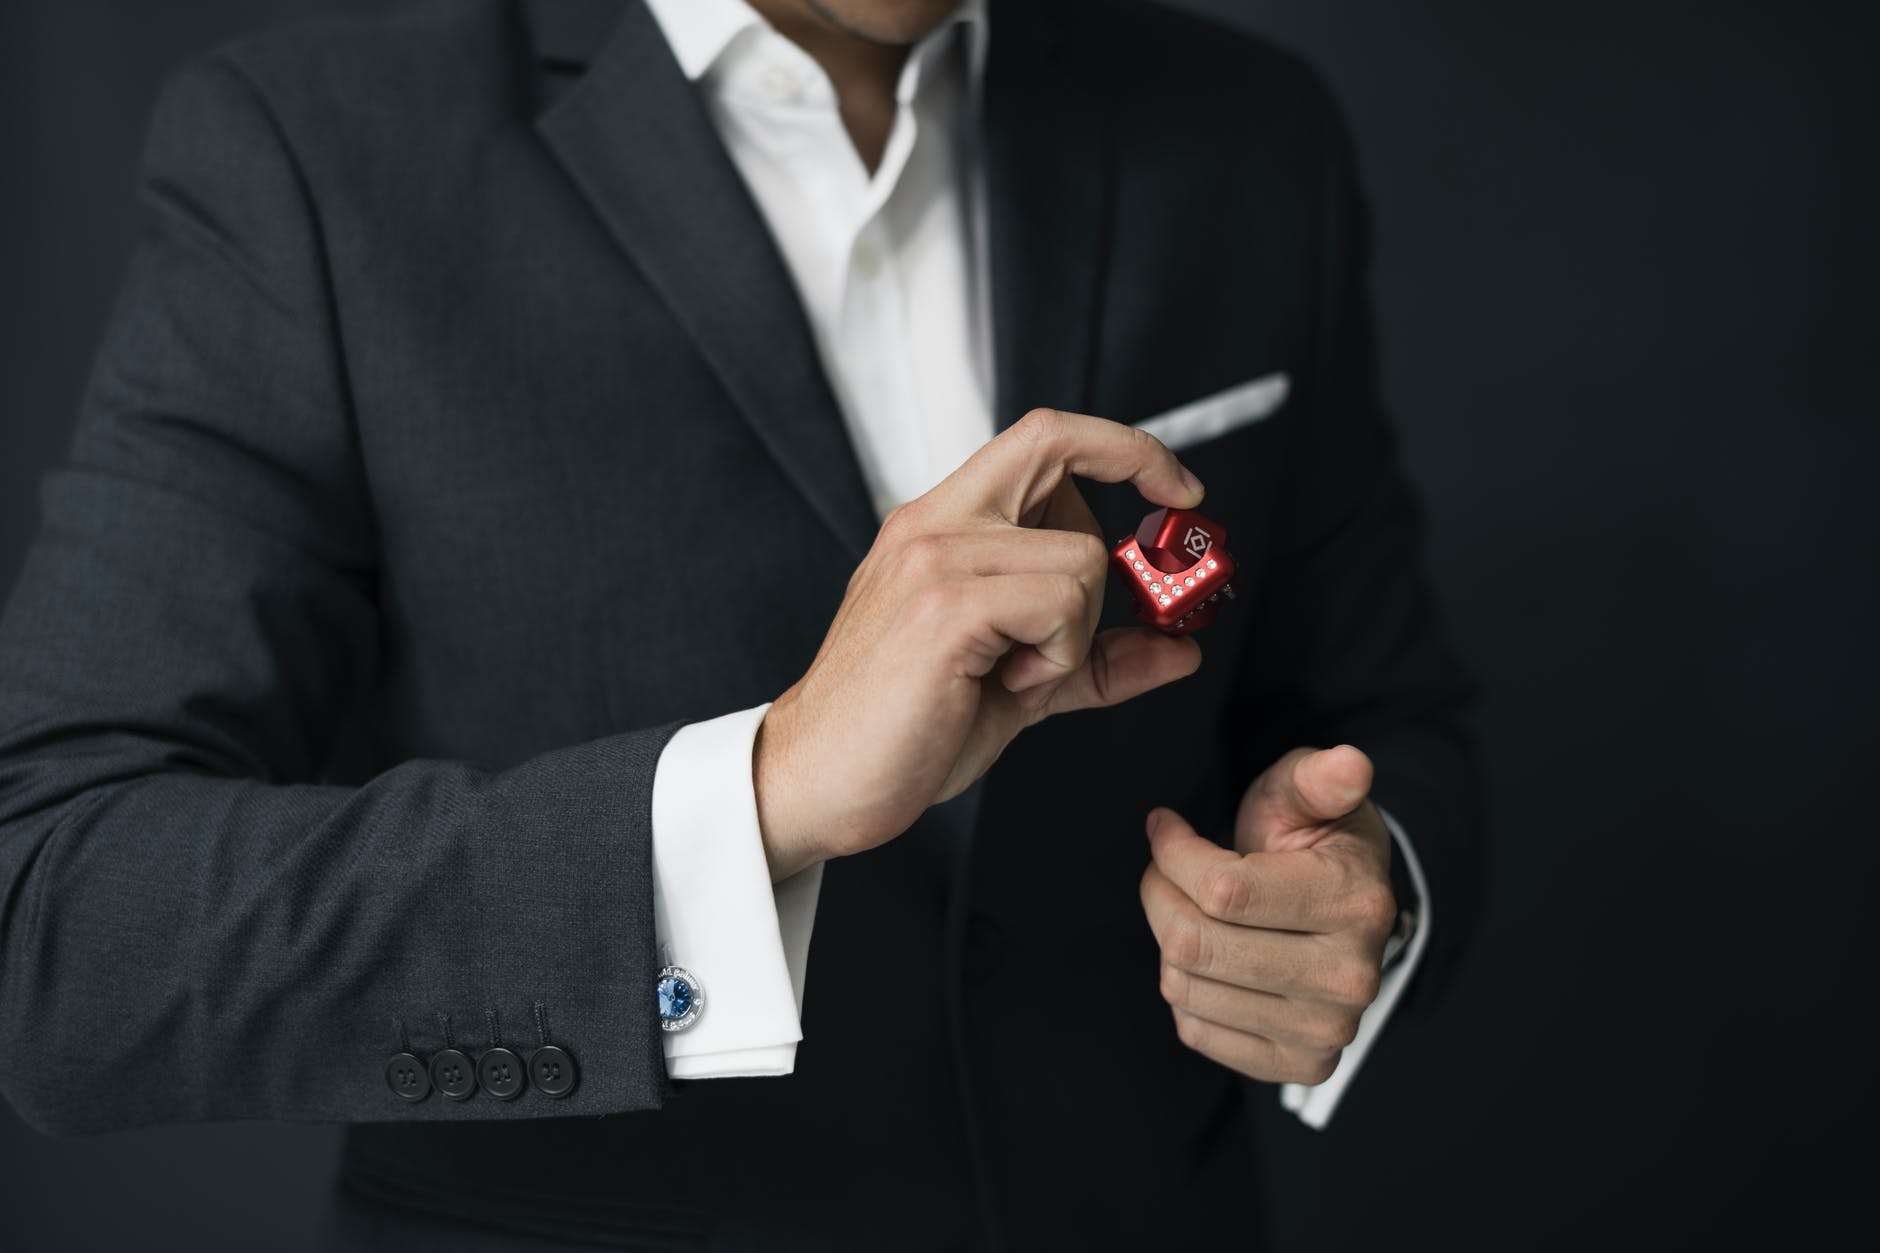 Image of a person wearing a suit with a blue cufflinks